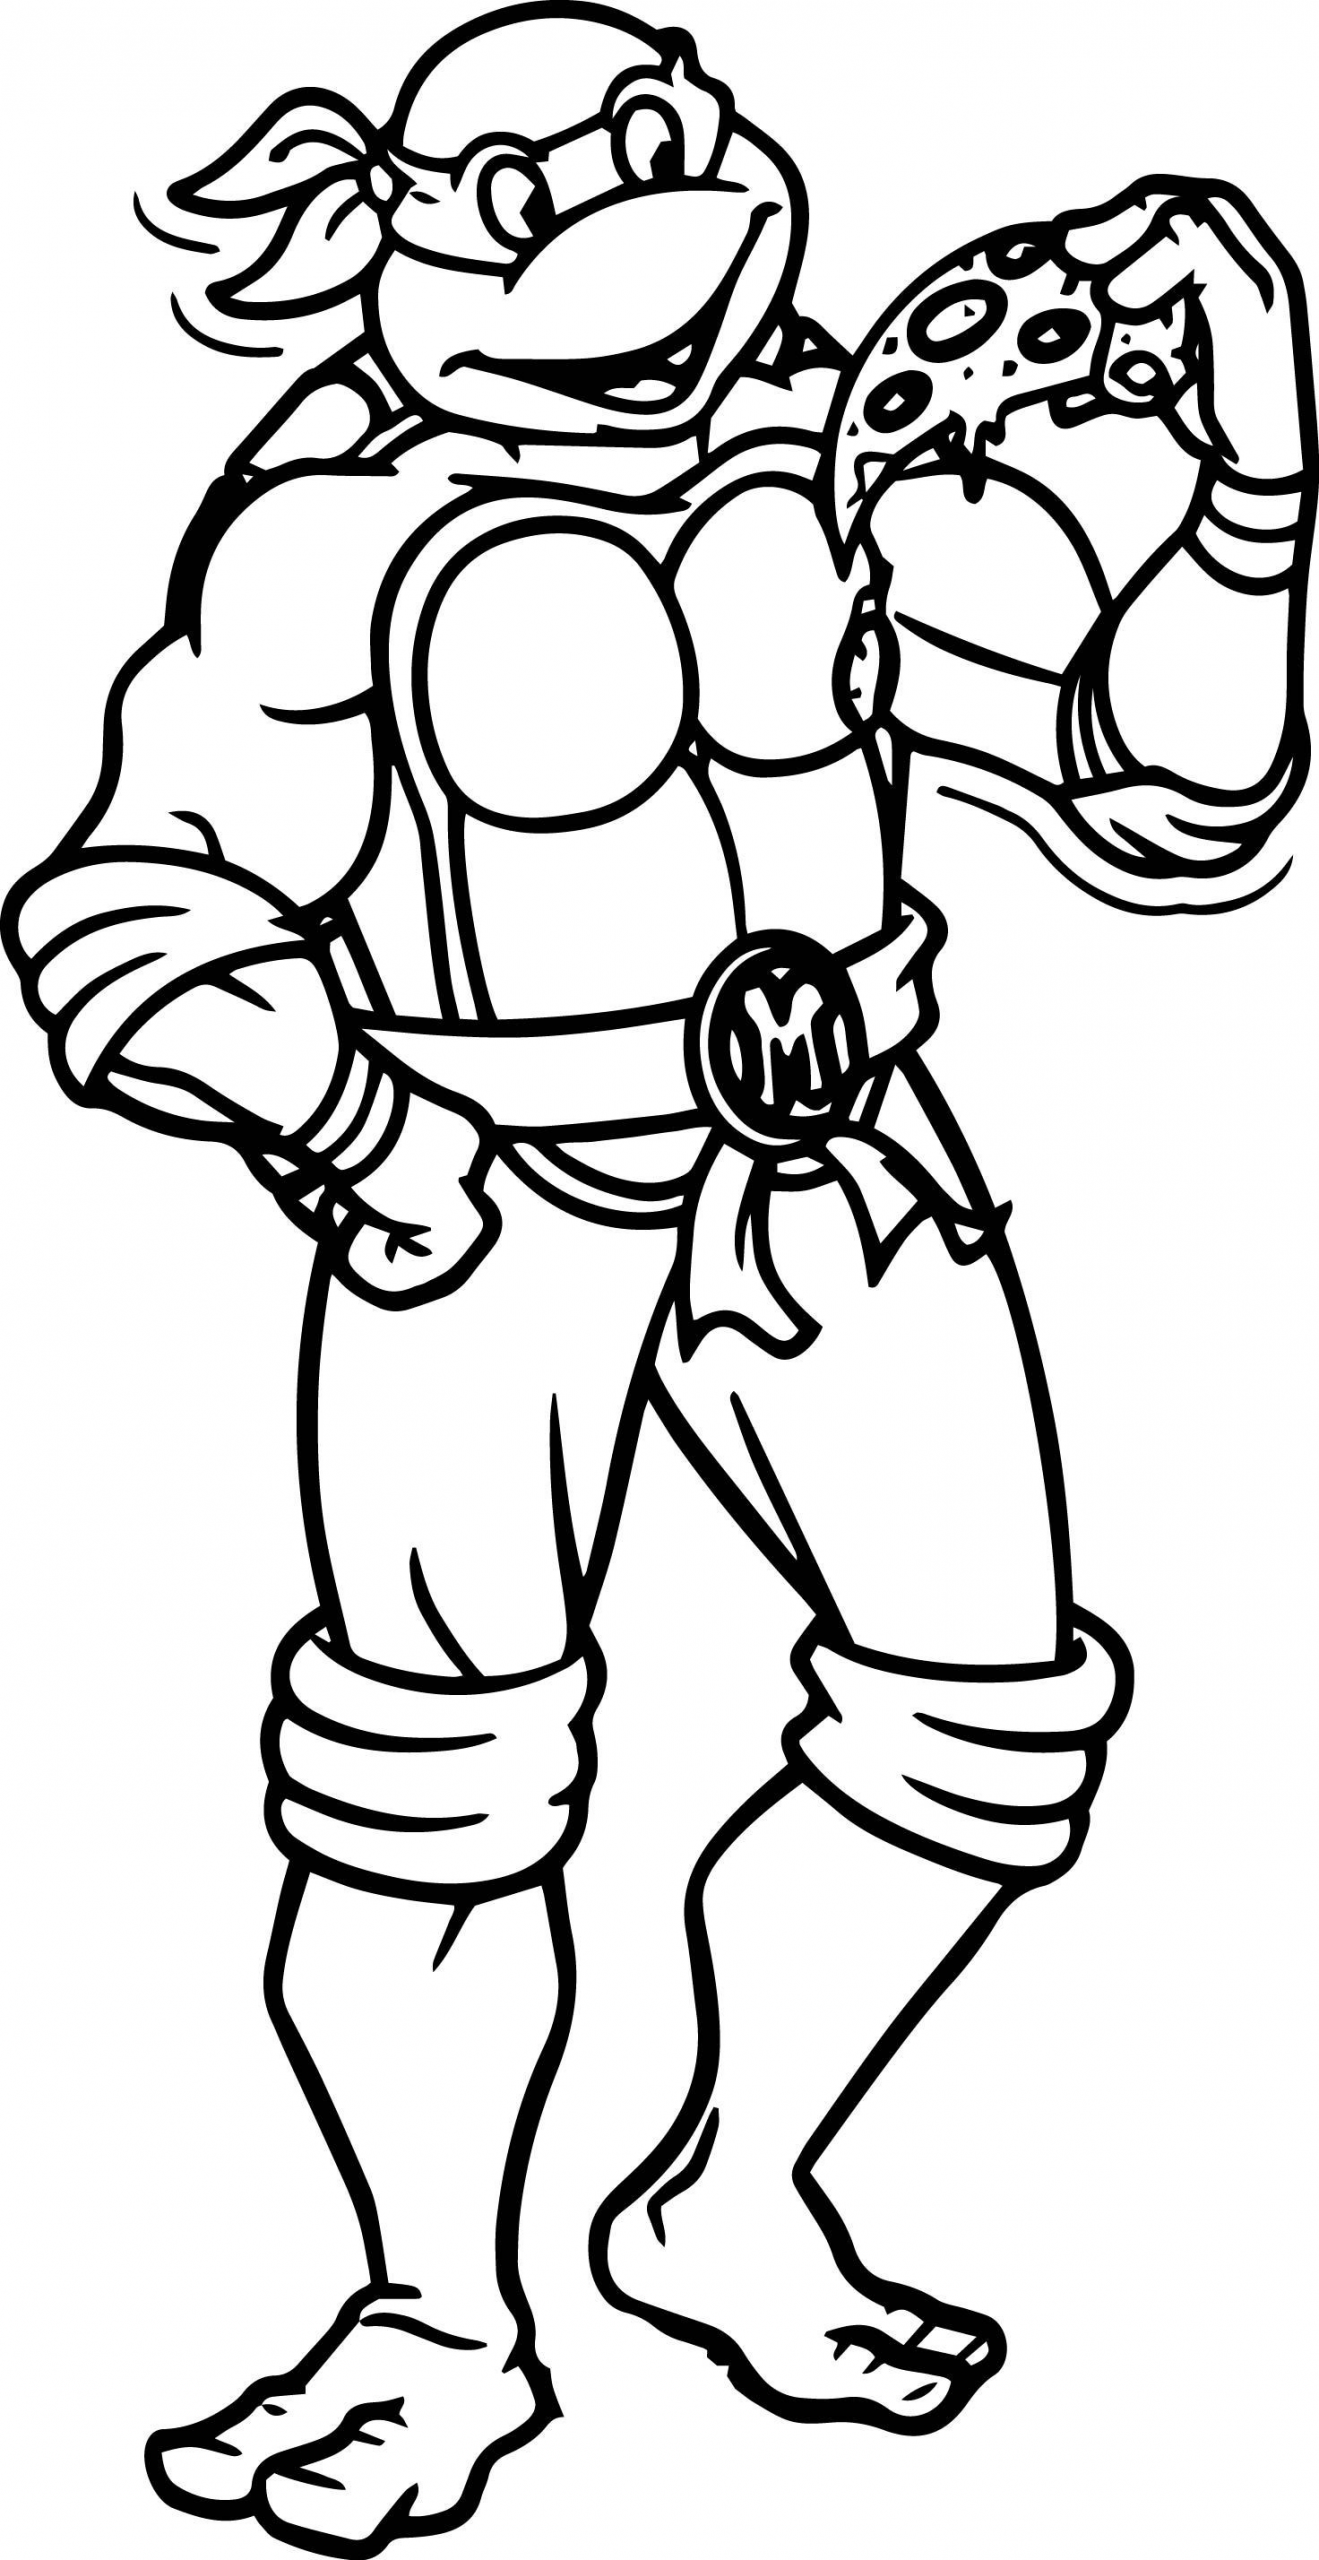 Ninja Turtle Coloring Page Youngandtae Com Turtle Coloring Pages Ninja Turtle Coloring Pages Superhero Coloring Pages